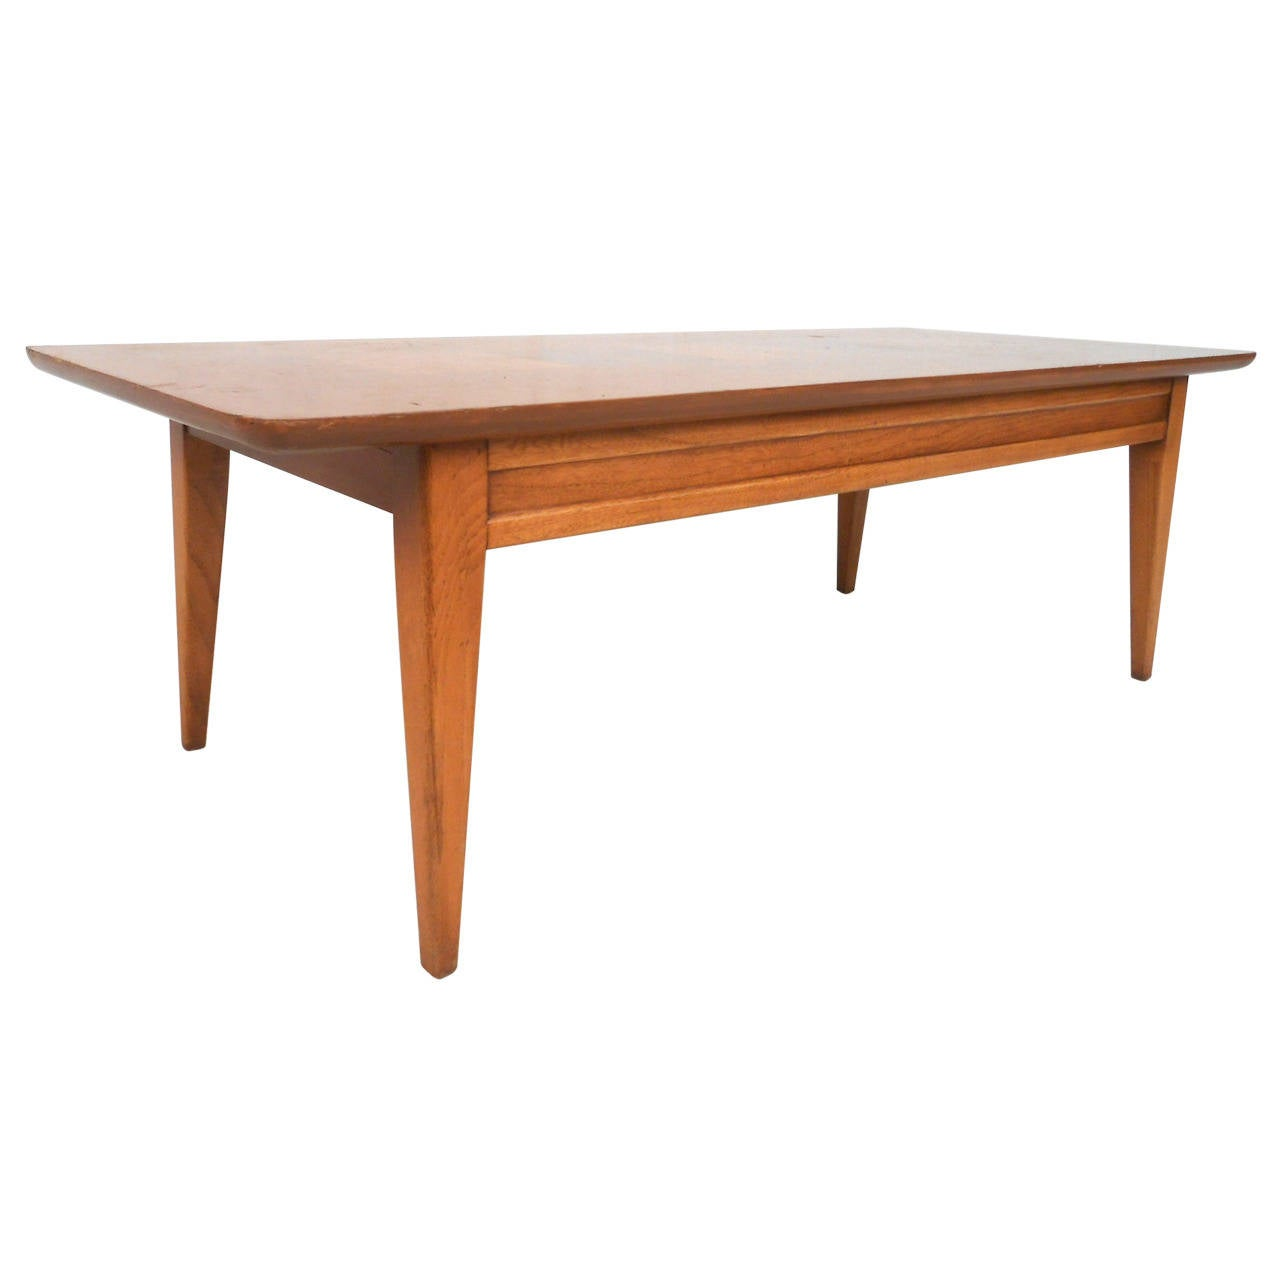 Mid-Century Style Walnut with Burlwood Inlay Coffee Table by Lane Furniture  1 - Mid-Century Style Walnut With Burlwood Inlay Coffee Table By Lane